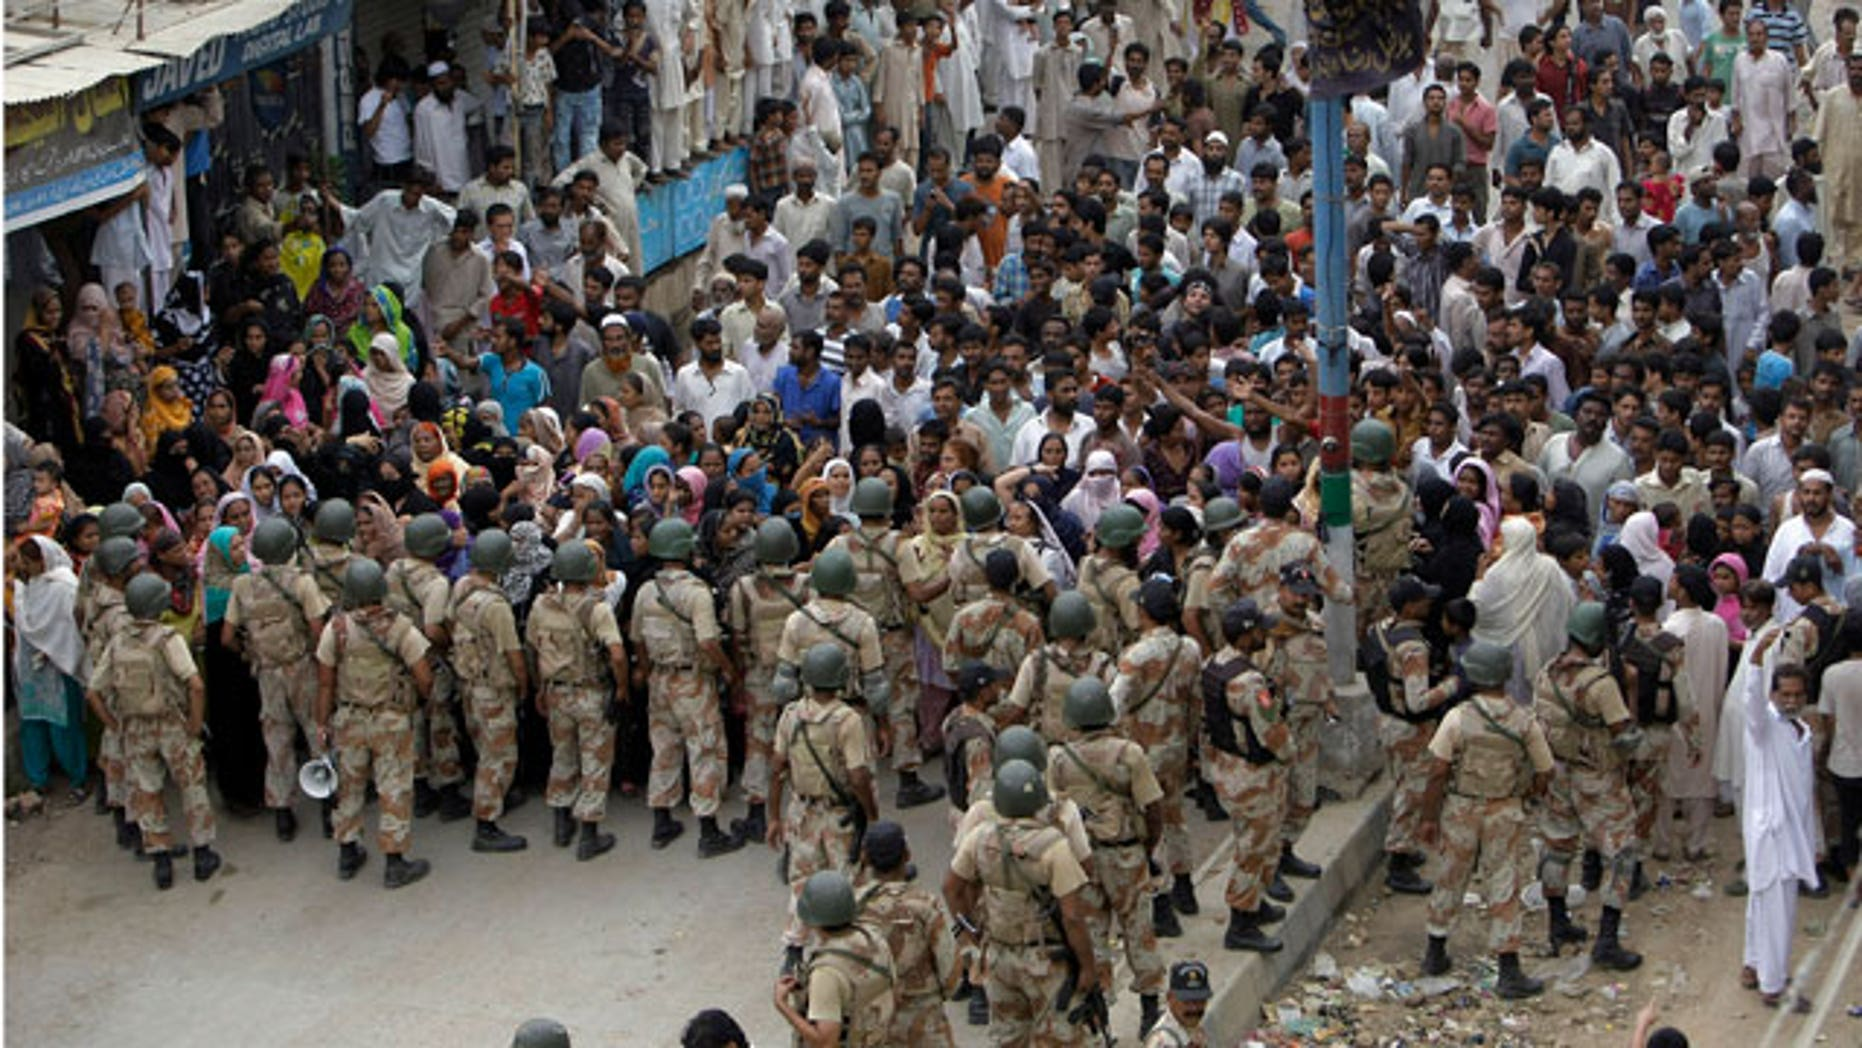 Paramilitary troops try to control a crowd gather to complain their problems after security forces took control of a troubled area of Karachi, Pakistan on Saturday, July 9, 2011. Gunshots rattled Pakistan's largest city Saturday as authorities scrambled to bring an end to political and ethnic violence that has claimed at least 93 lives in five days.